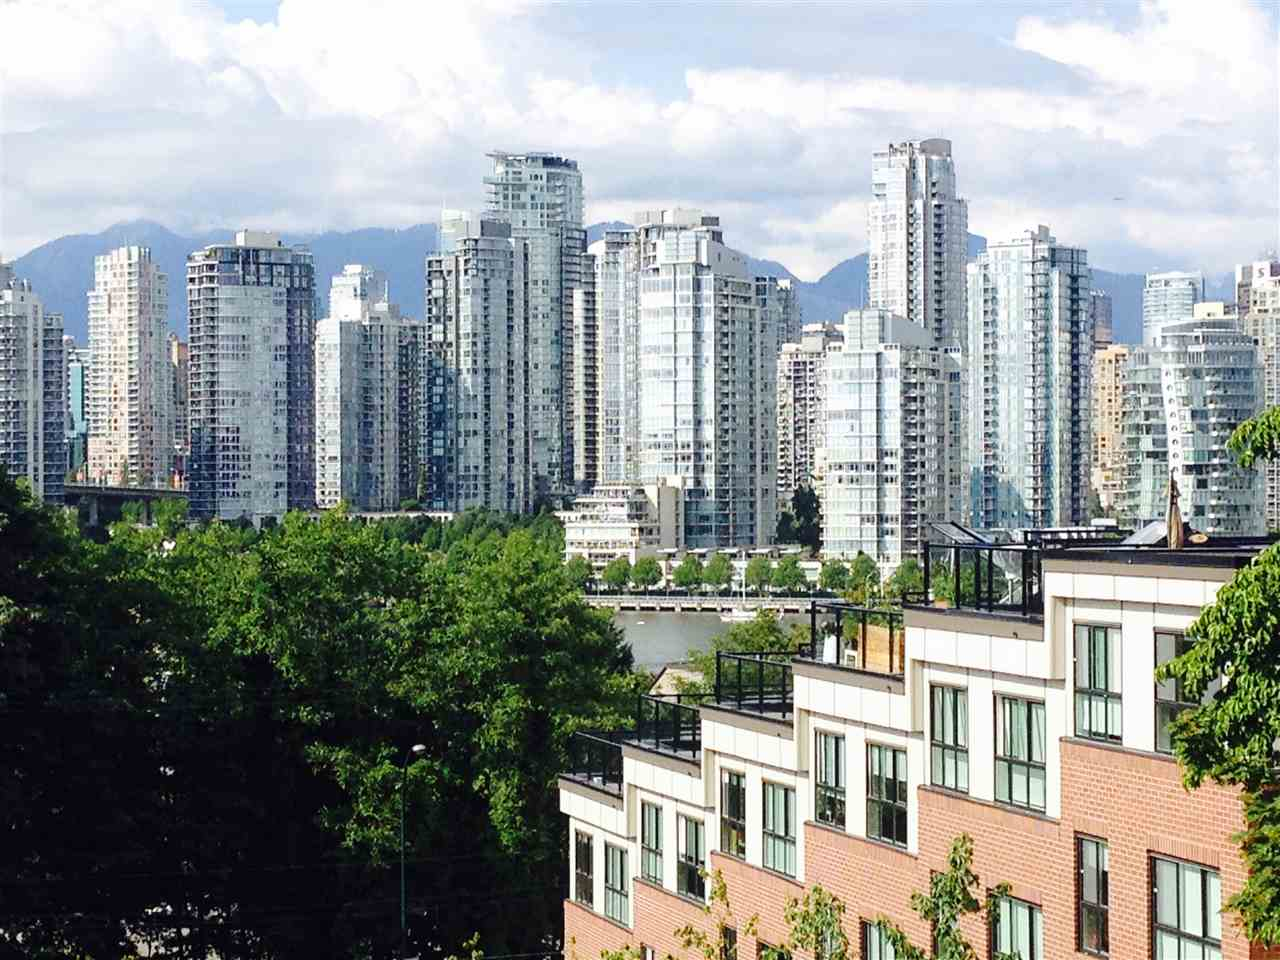 Photo 3: 2309 ALDER STREET in Vancouver: Fairview VW Condo for sale (Vancouver West)  : MLS(r) # R2115607